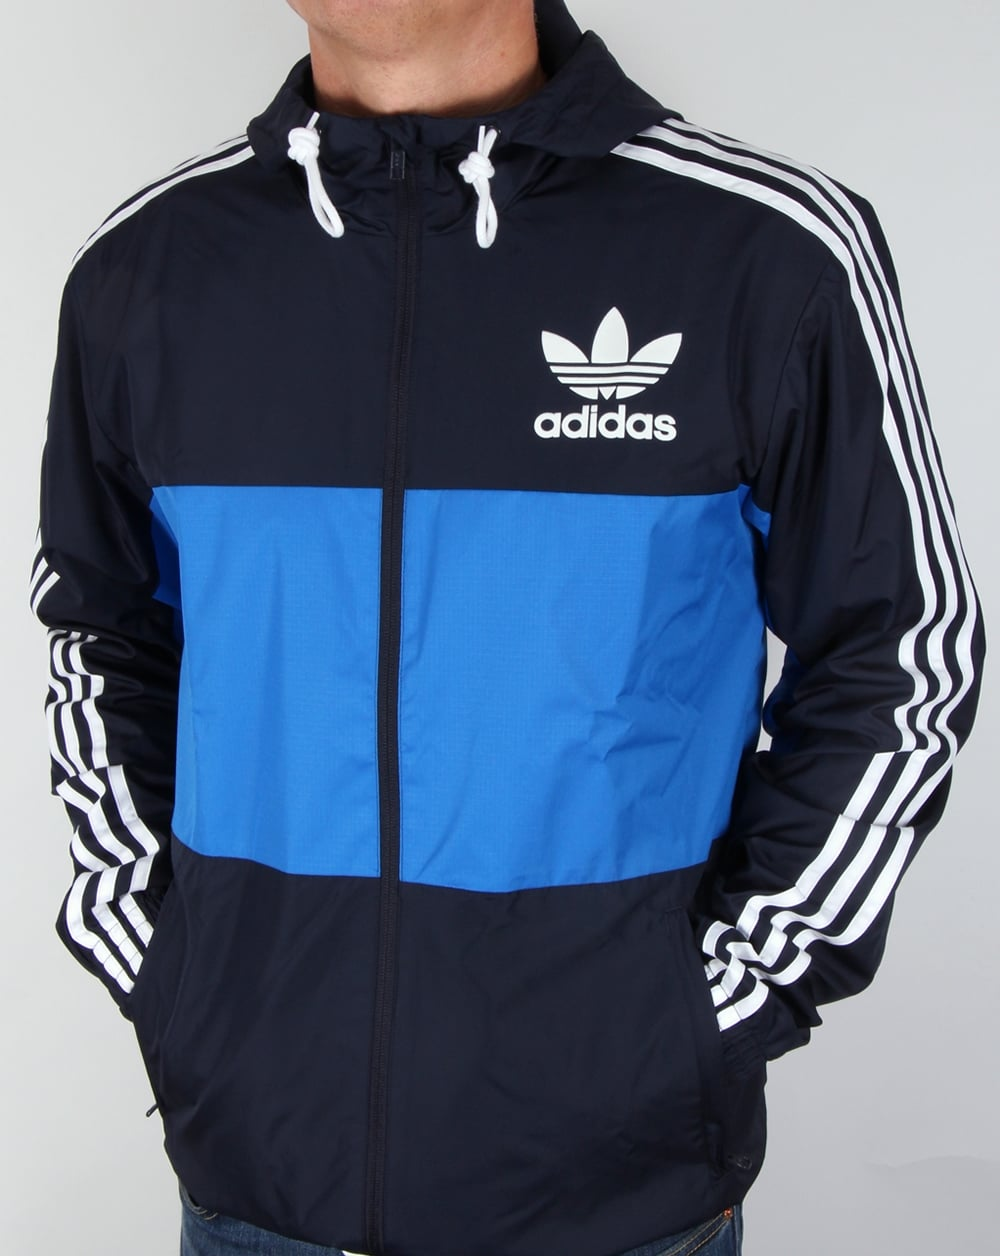 adidas originals california windbreaker navy bluebird jacket coat mens. Black Bedroom Furniture Sets. Home Design Ideas